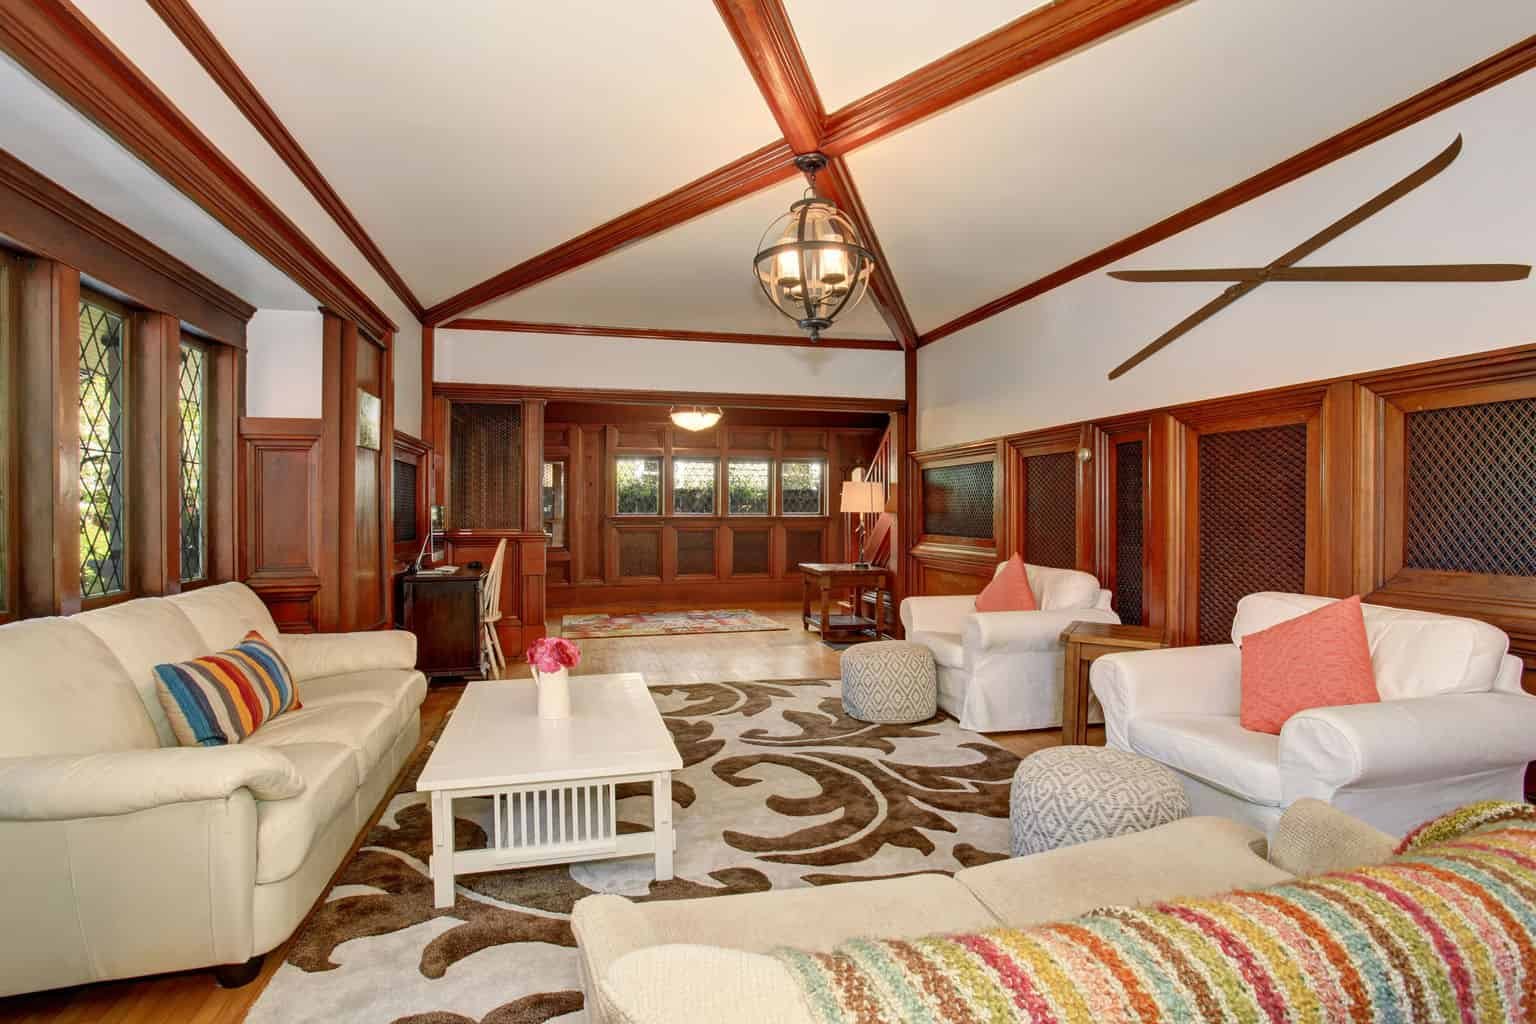 There Are, Of Course, Less Expensive Options To Achieve The Look Of Cherry  Hardwood Floors Without Paying For The Solid Hardwood Planks.